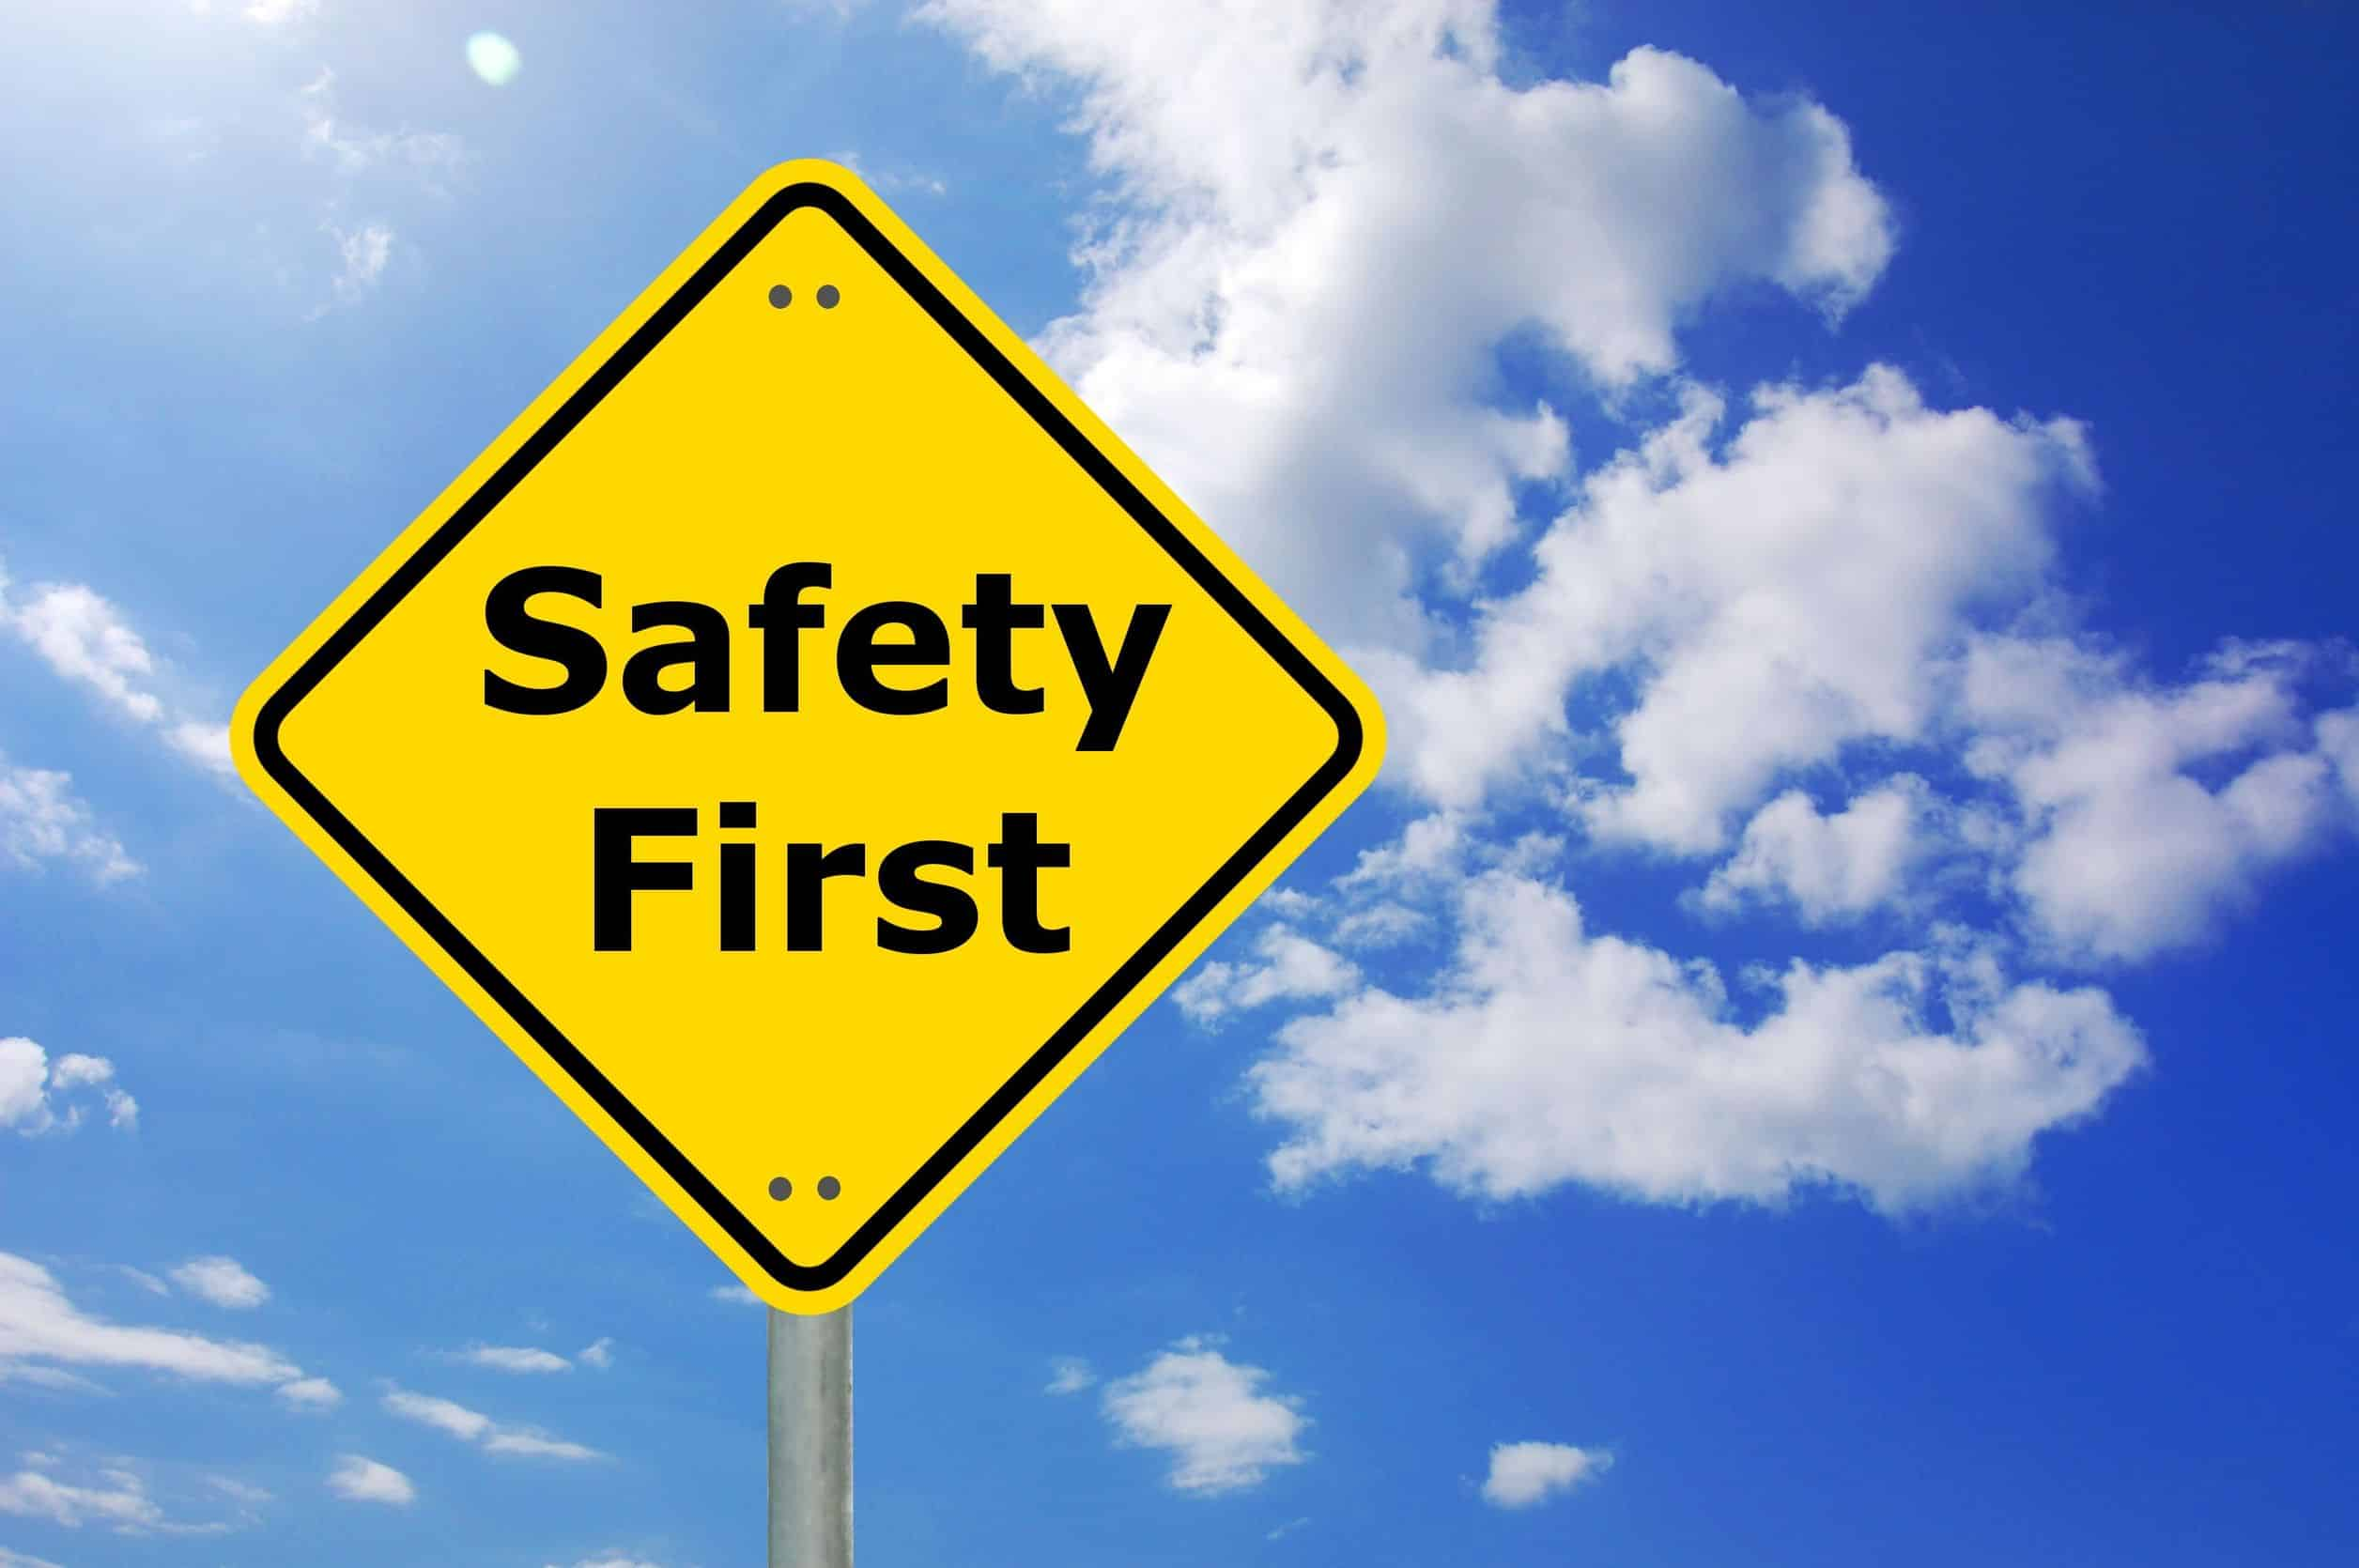 BENEFITS OF HAVING A SAFETY SIGN IN YOUR AREA